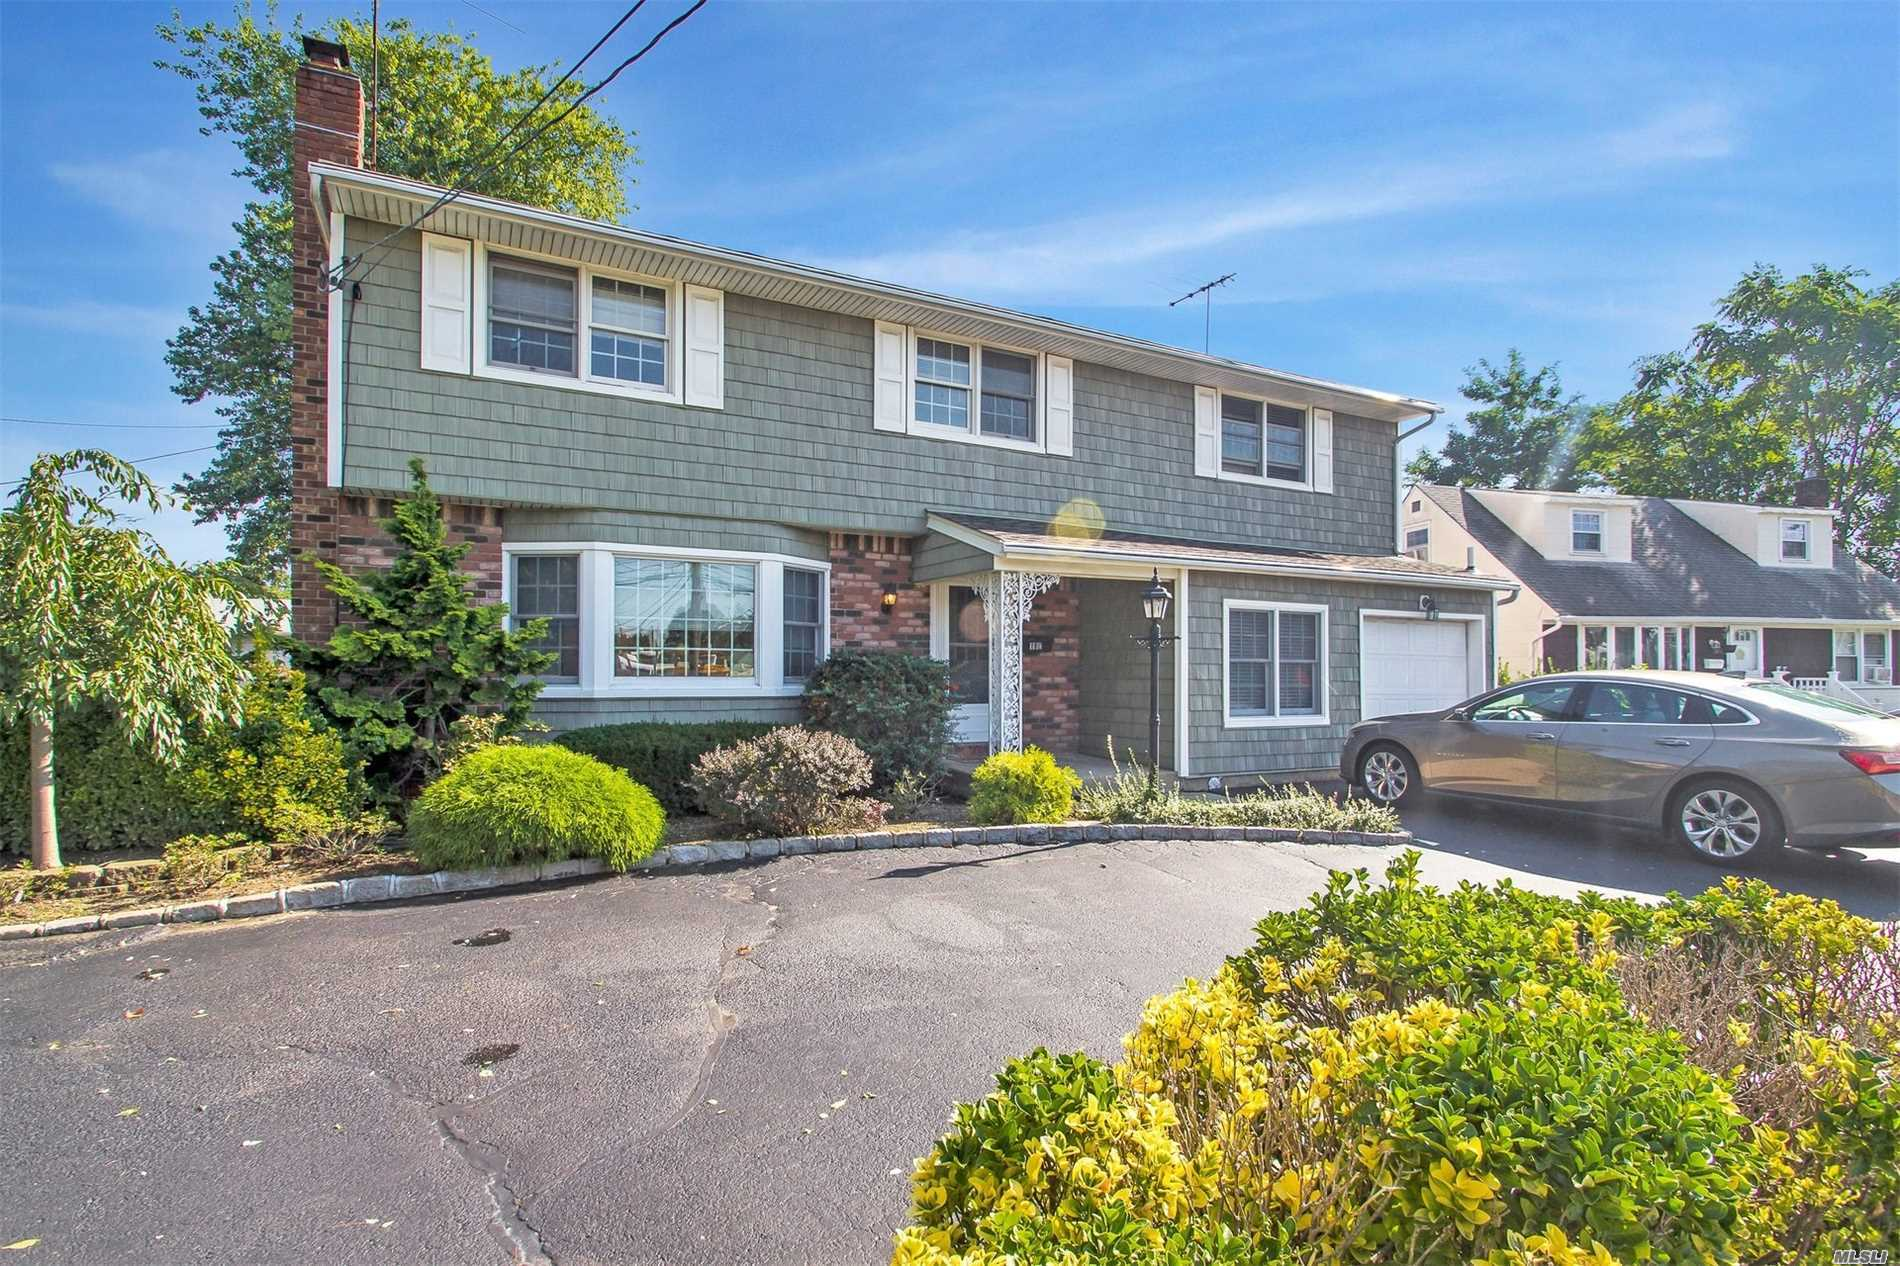 Photo of home for sale at 1181 Bellmore Ave, Bellmore NY